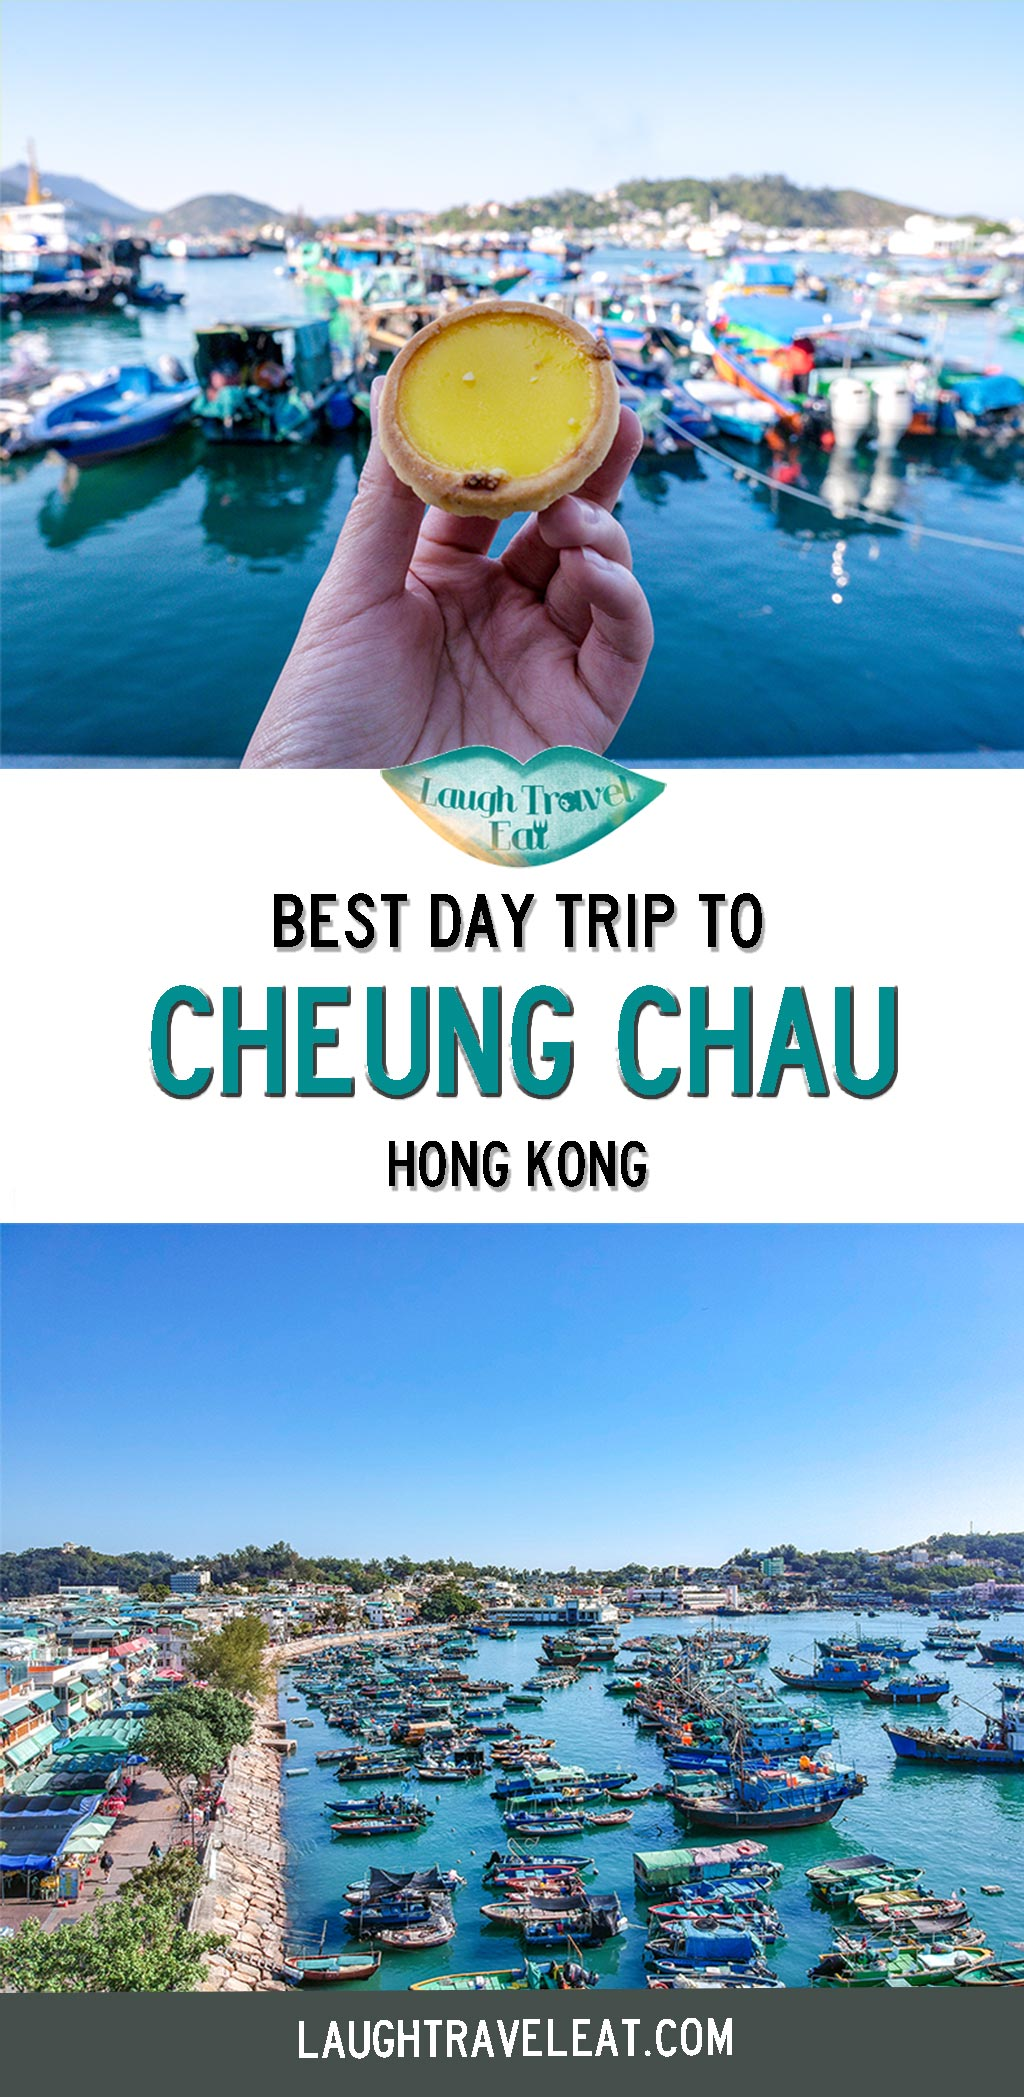 Cheung Chau is a fishing village known for its slower pace of life and seafood, as well as home to several historical sights. If you are looking for a day trip in Hong Kong that's not too taxing with variety, Cheung Chau is the one for you! #CheungChau #HongKong